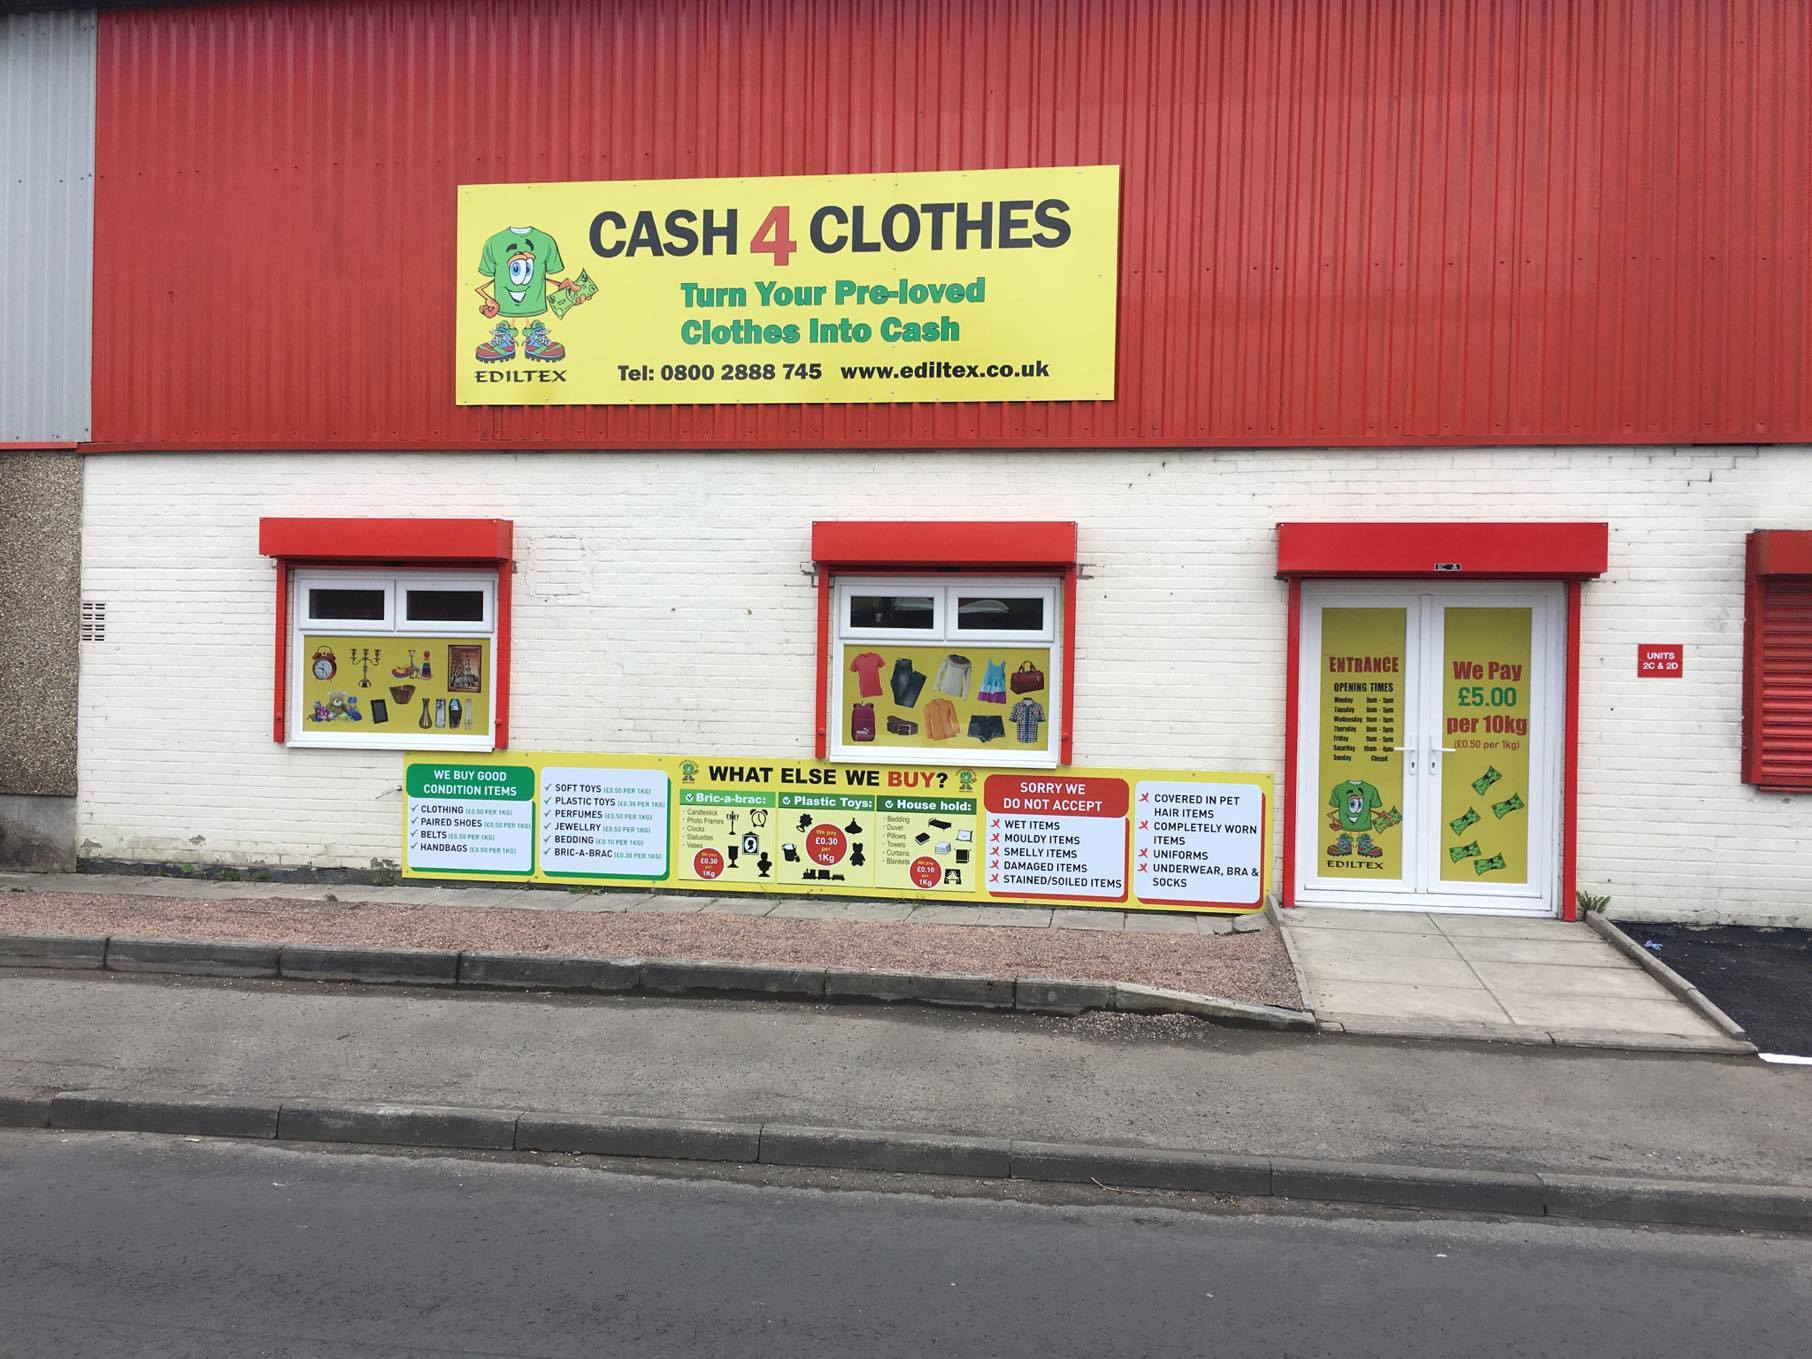 Cash for Clothes Cardiff There is no doubt that, over the years, we have collected a fair few bags of unwanted clothing from the homes of the , plus residents of Cardiff. Not only has this enabled them to make a bit more room in their wardrobes but it has also generated a few extra pounds for them.